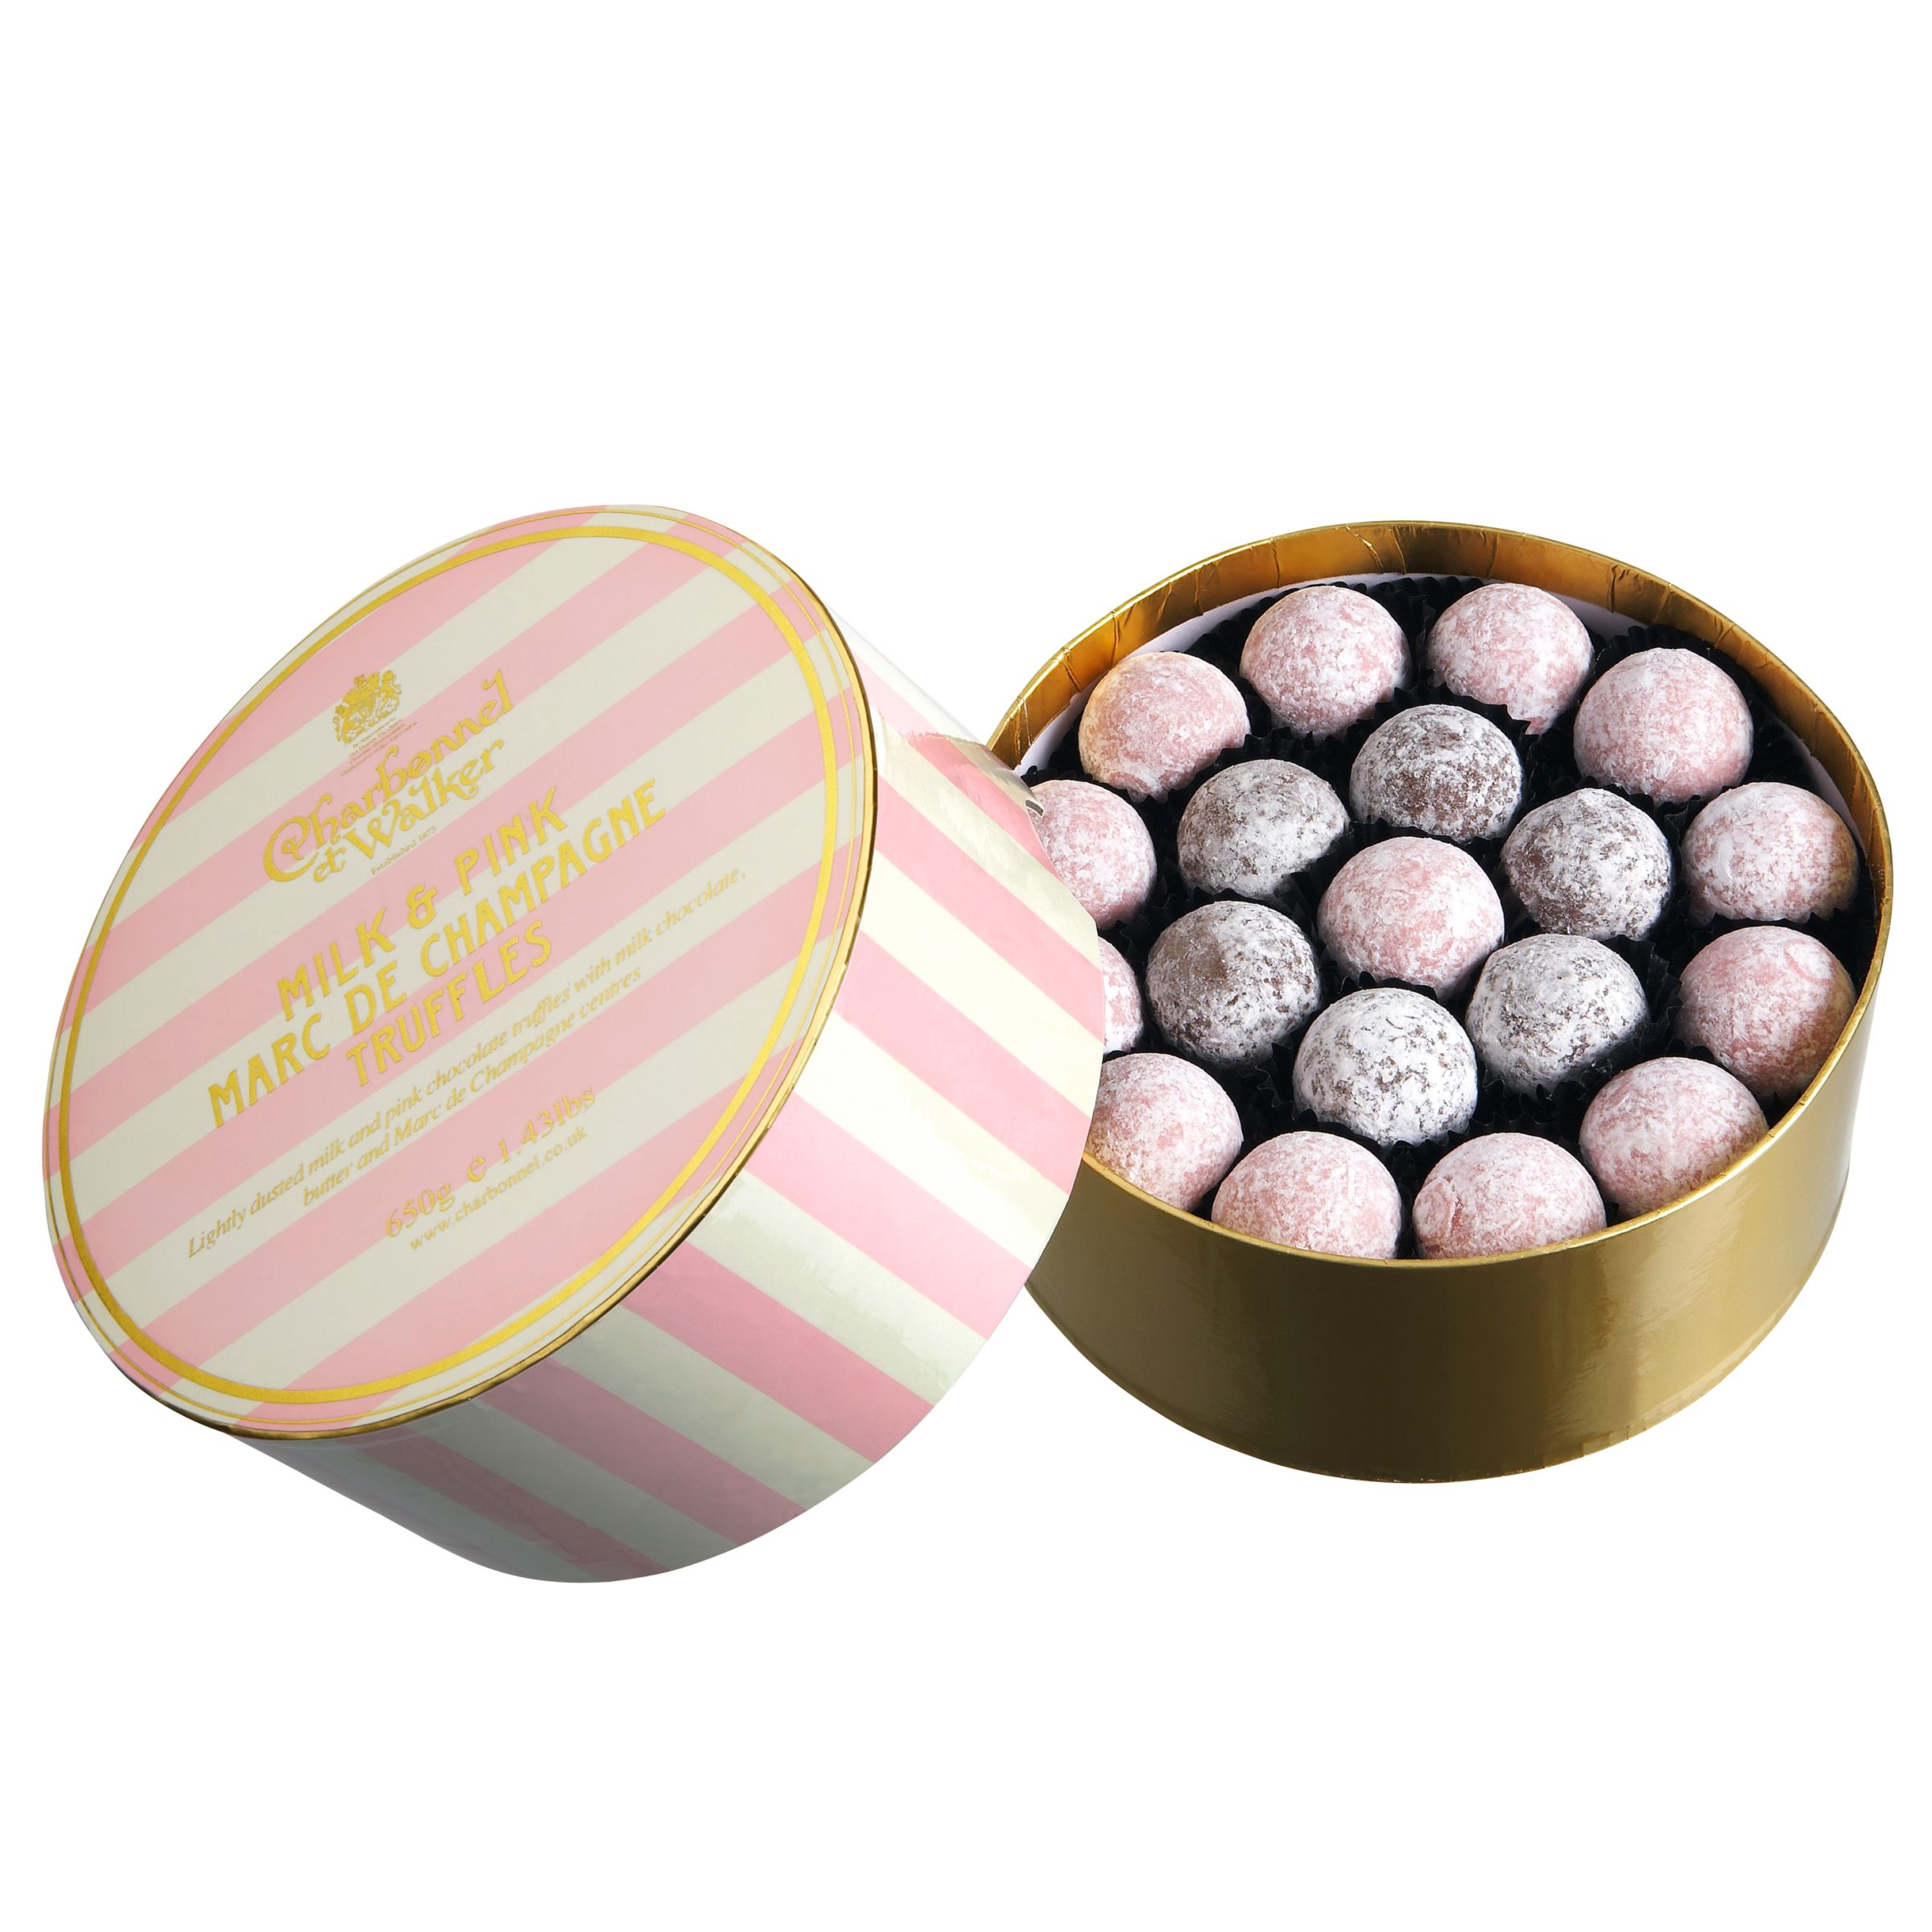 Charbonnel et Walker Charbonnel et Walker Milk and Pink Champagne Truffles, 650g